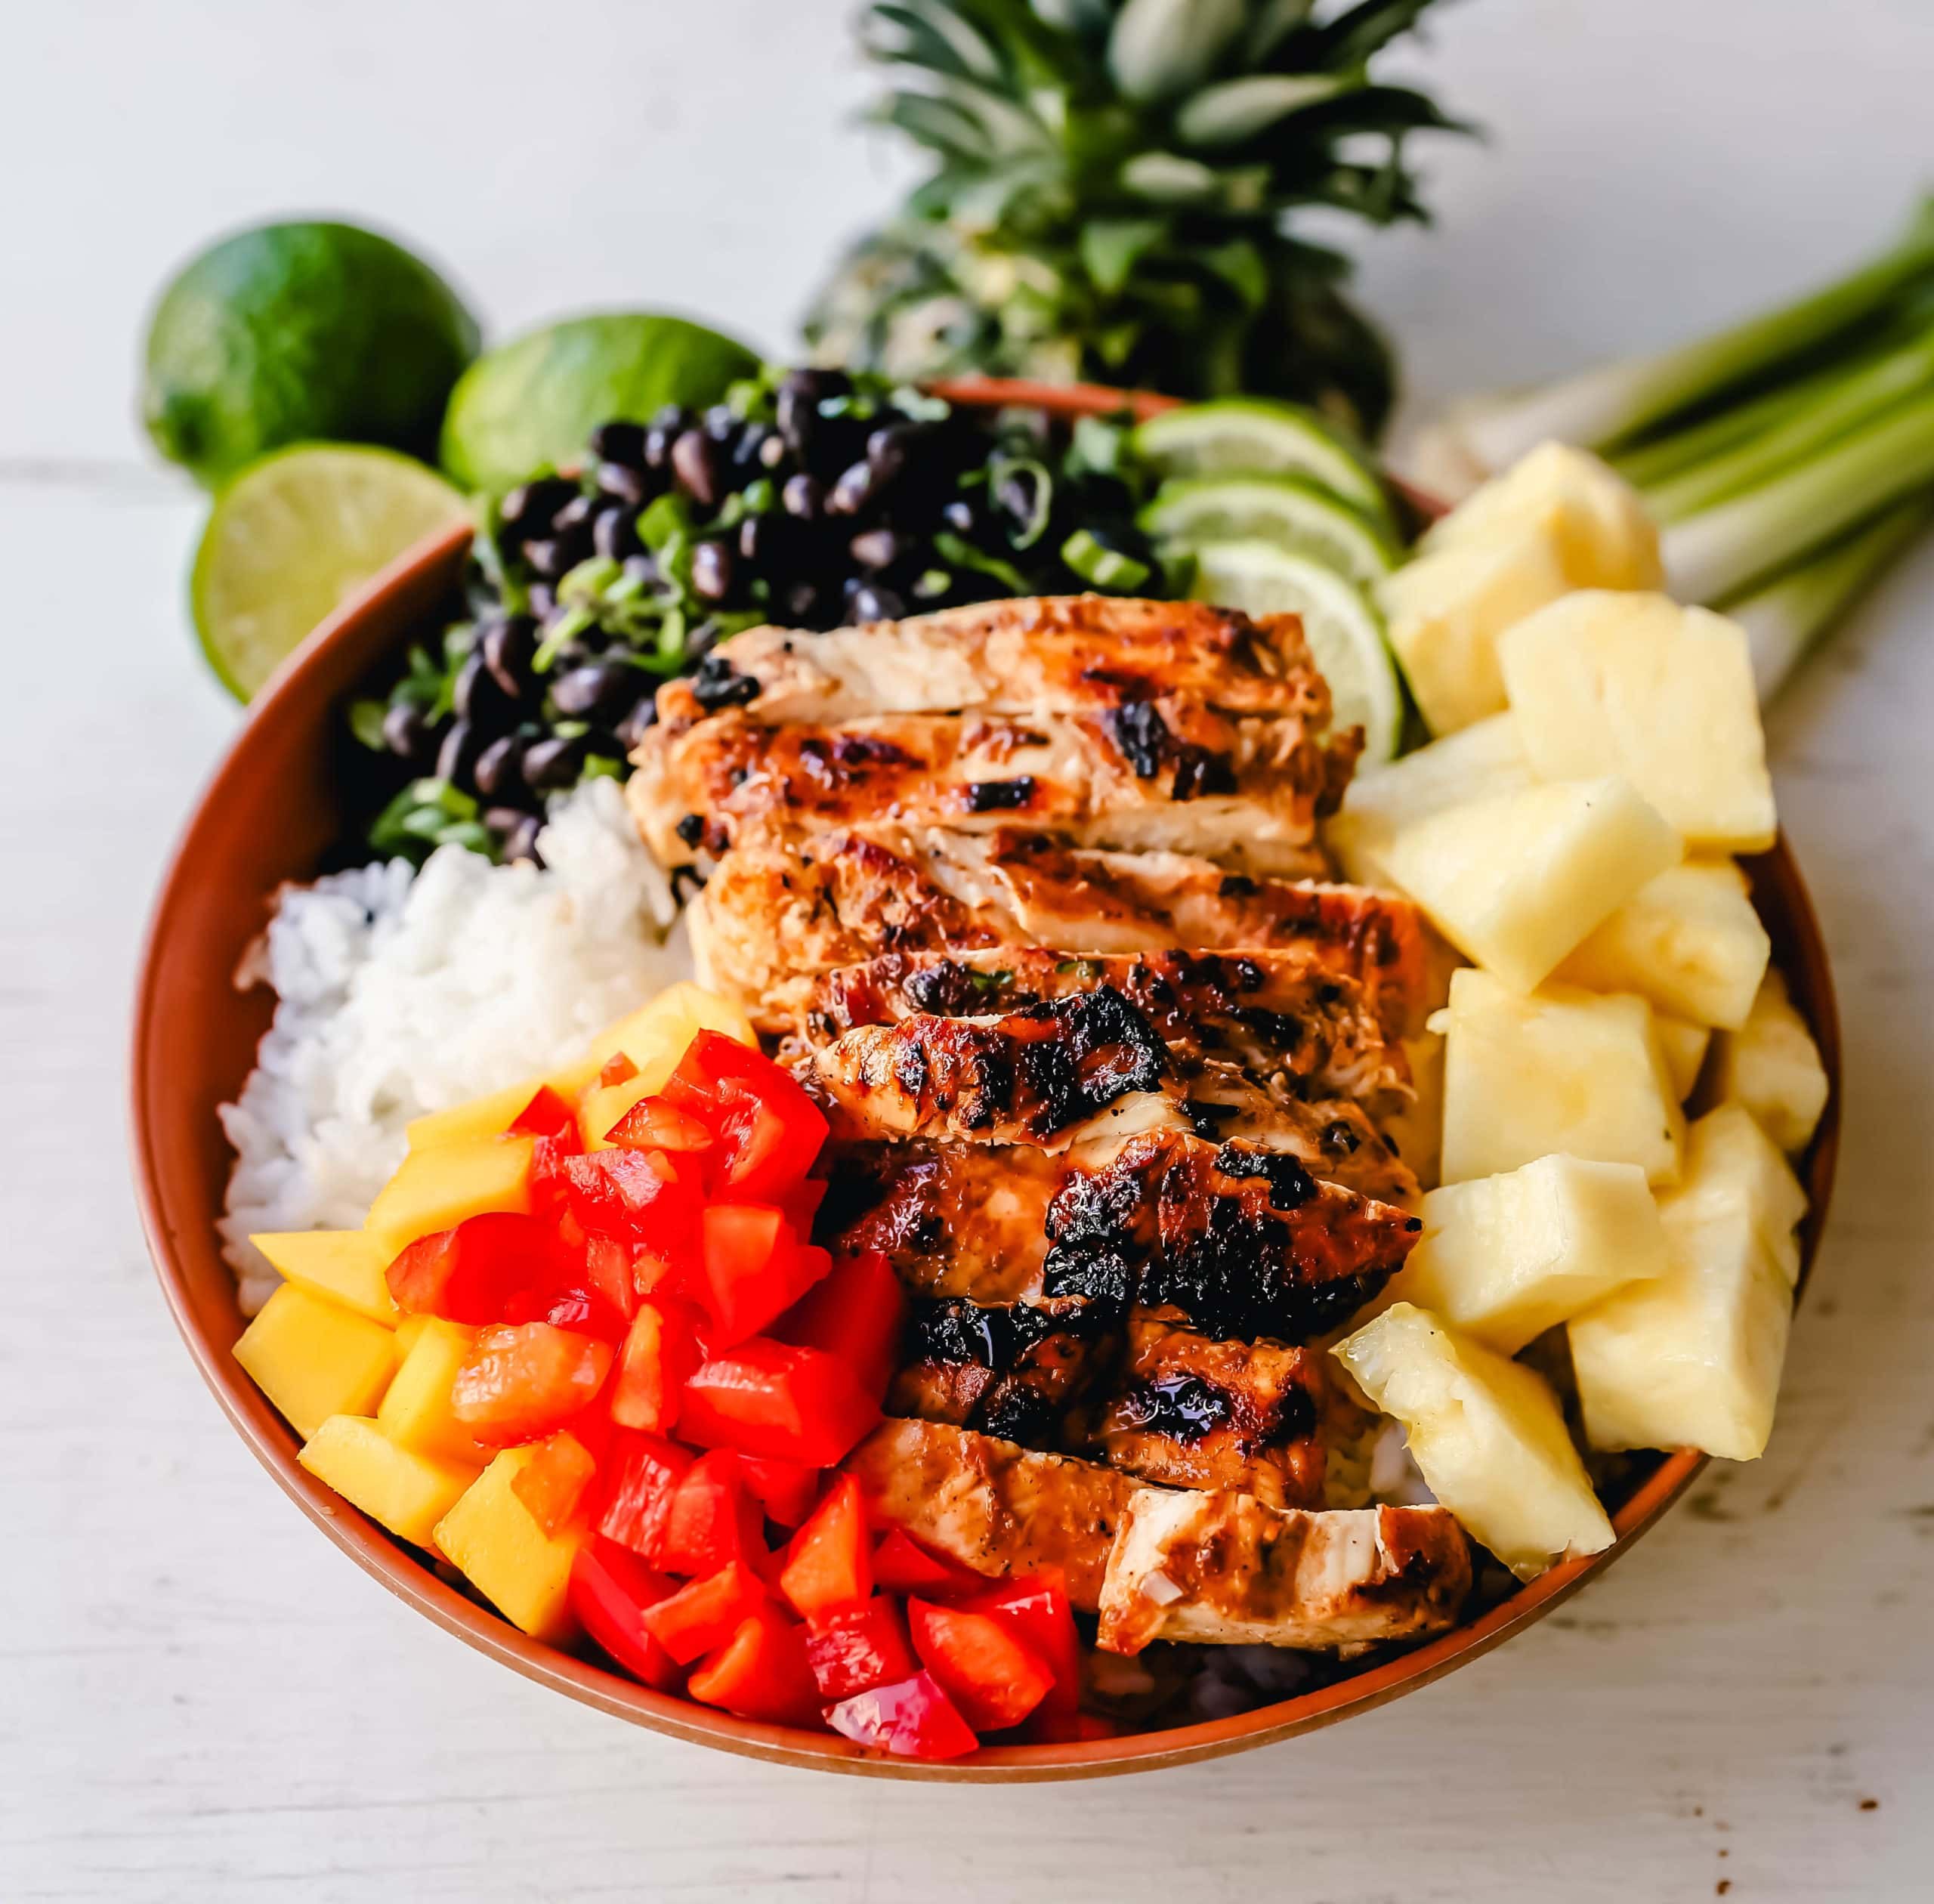 Jerk Chicken Bowl Jamaican spiced grilled Jerk Chicken with rice, black beans, cilantro, fresh pineapple and mango, and red peppers. www.modernhoney.com #jerkchicken #chicken #chickenbowl